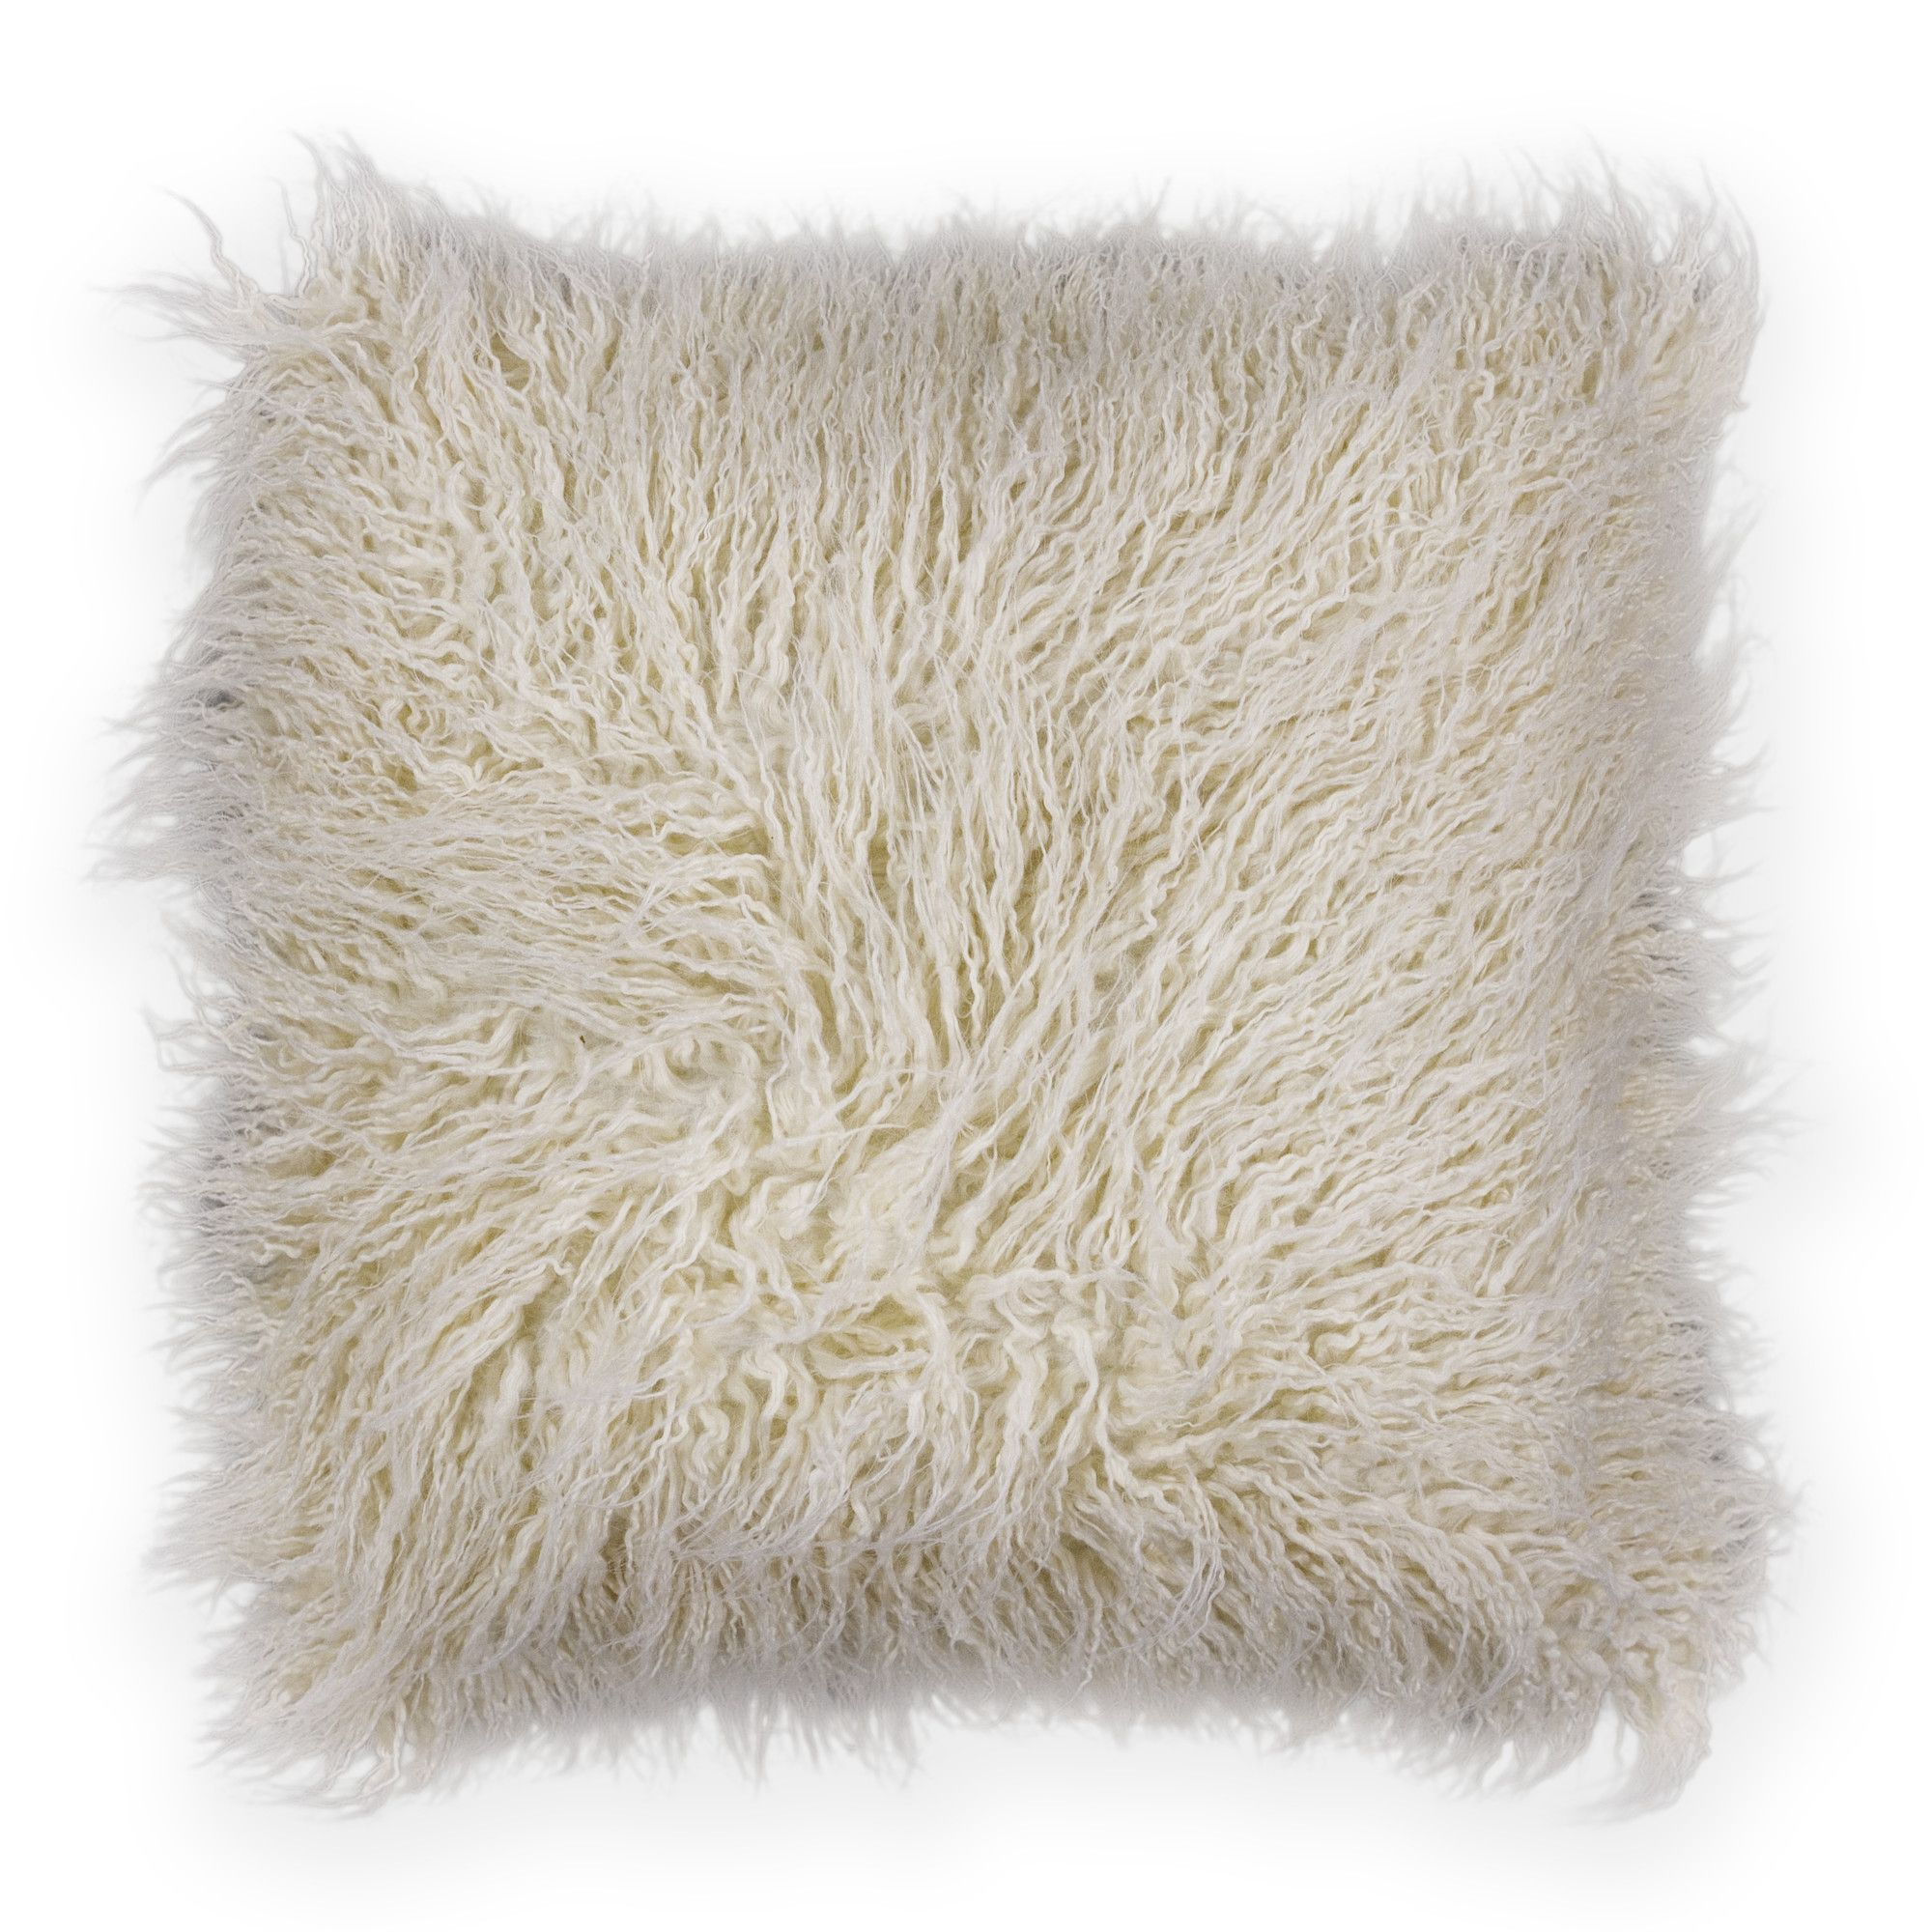 de fur pillow rose store vacances maison